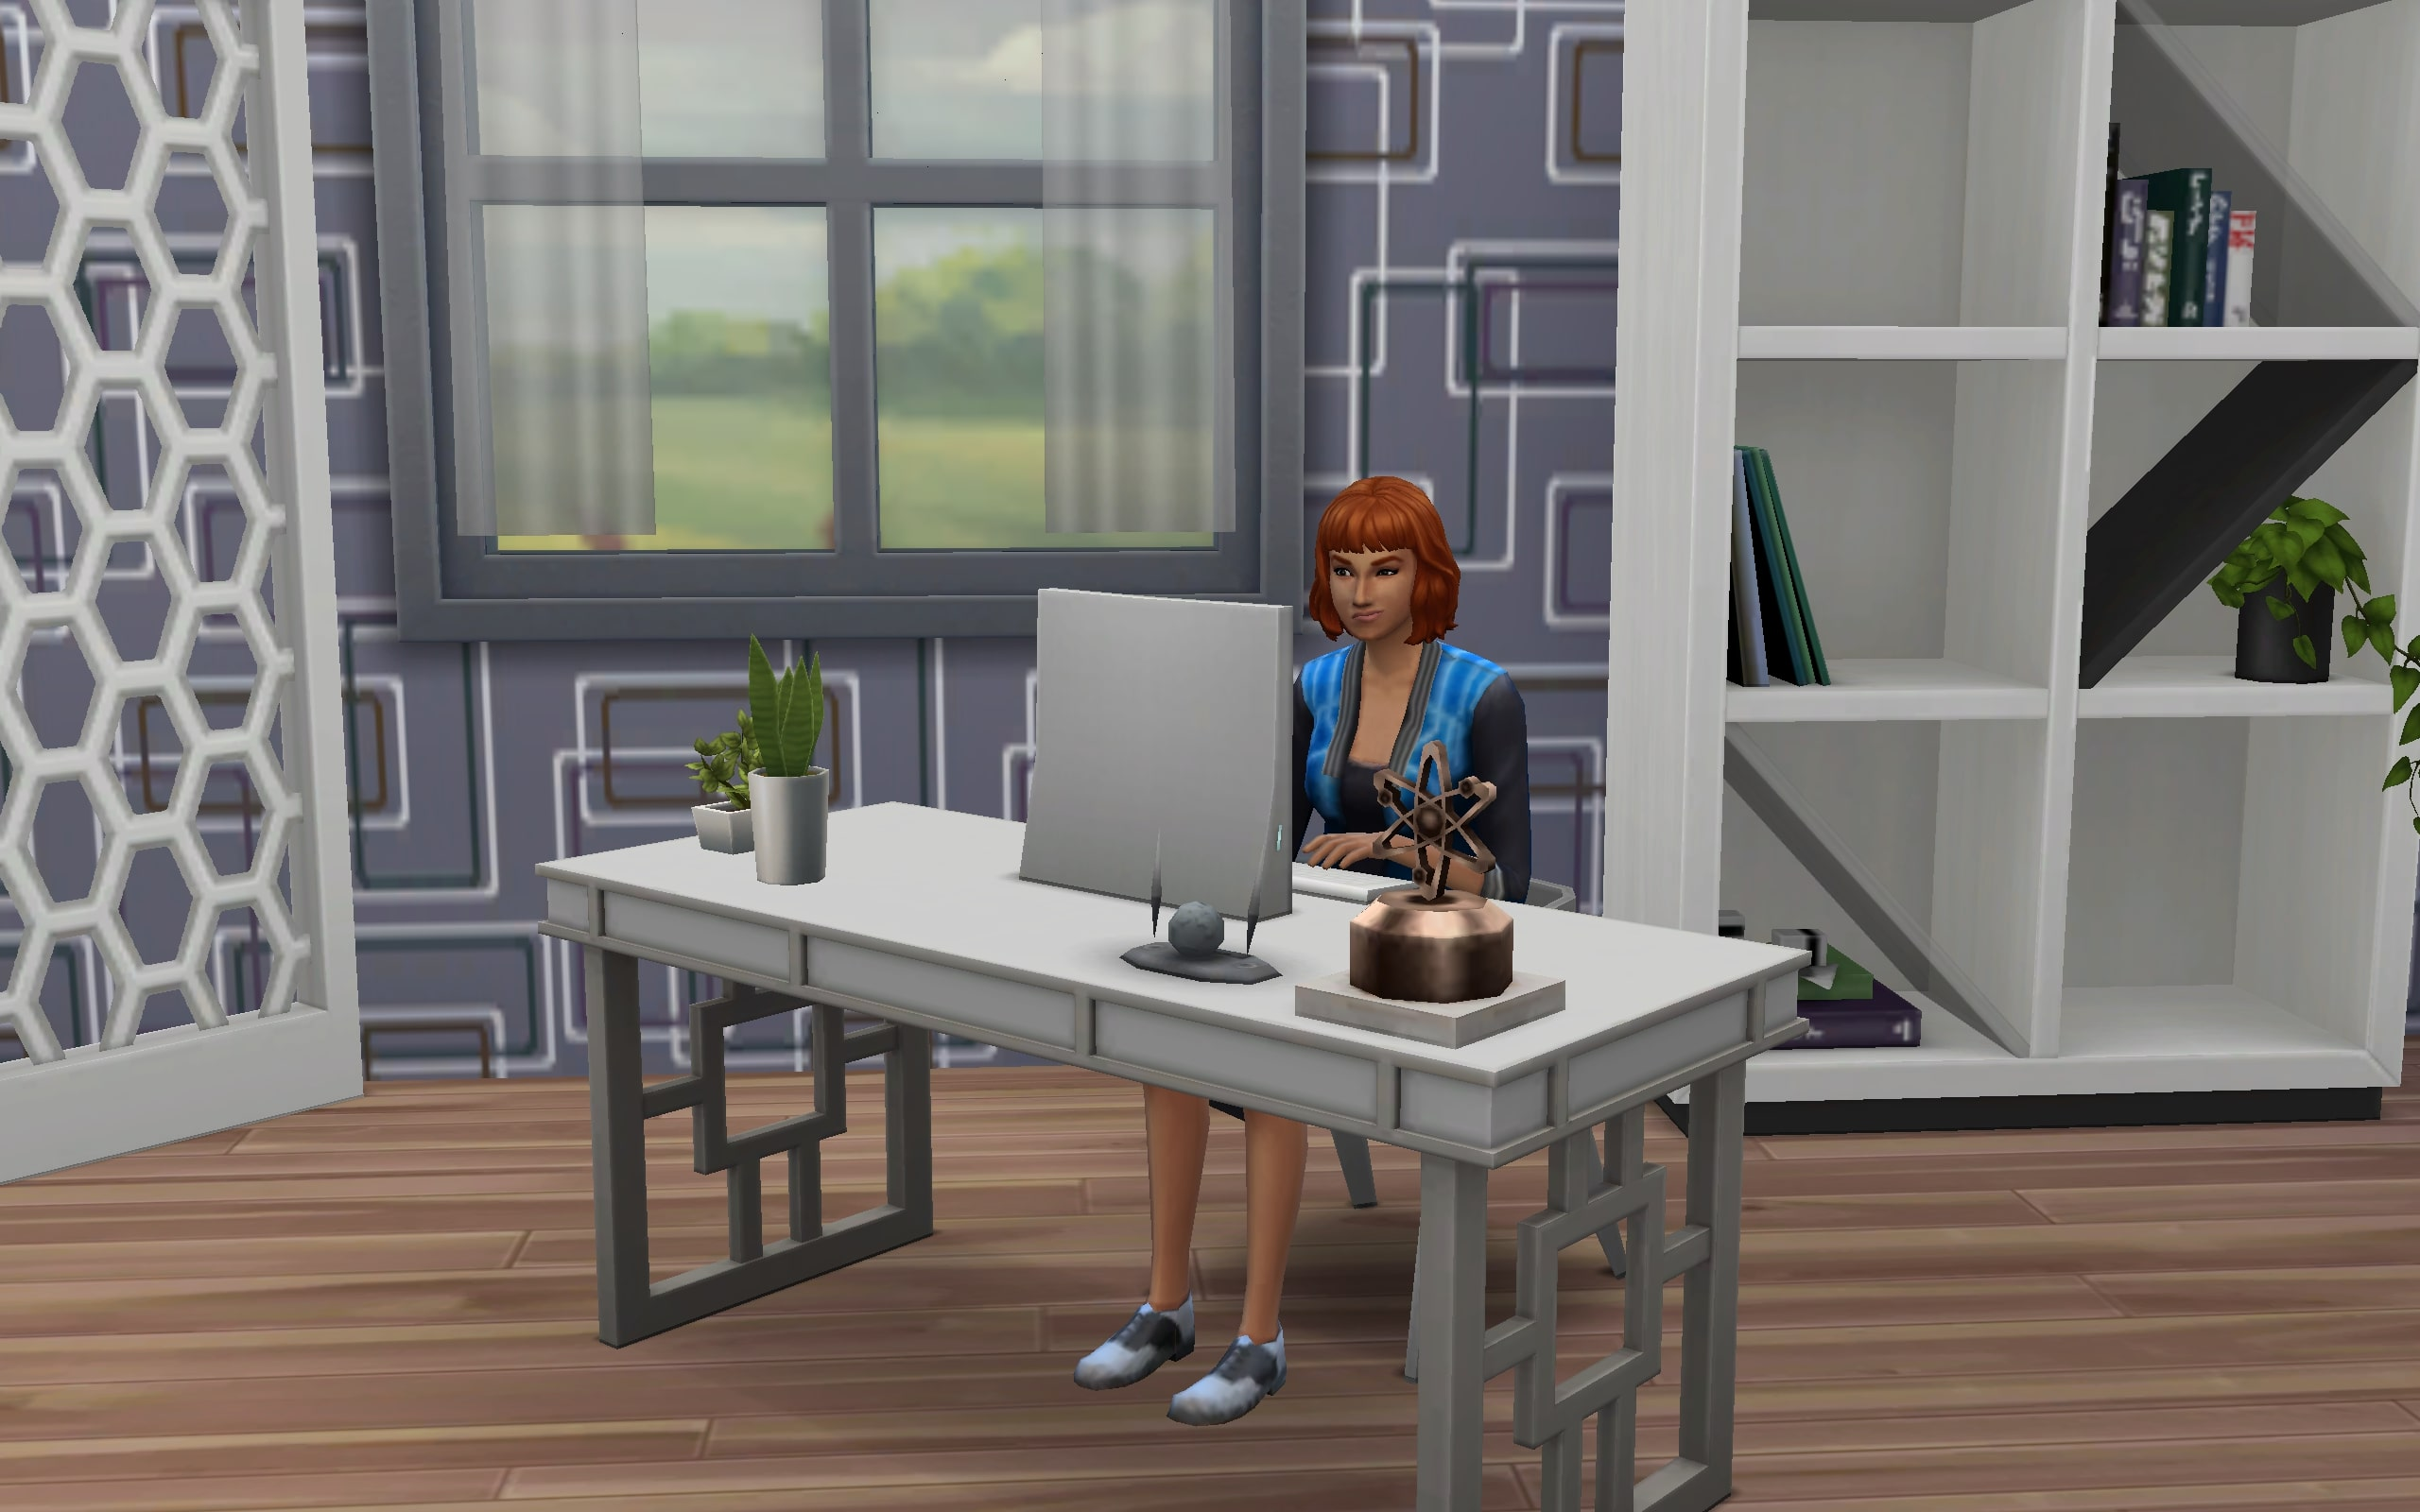 A (grumpy) Freelancer Sim is getting her gig done on the computer.